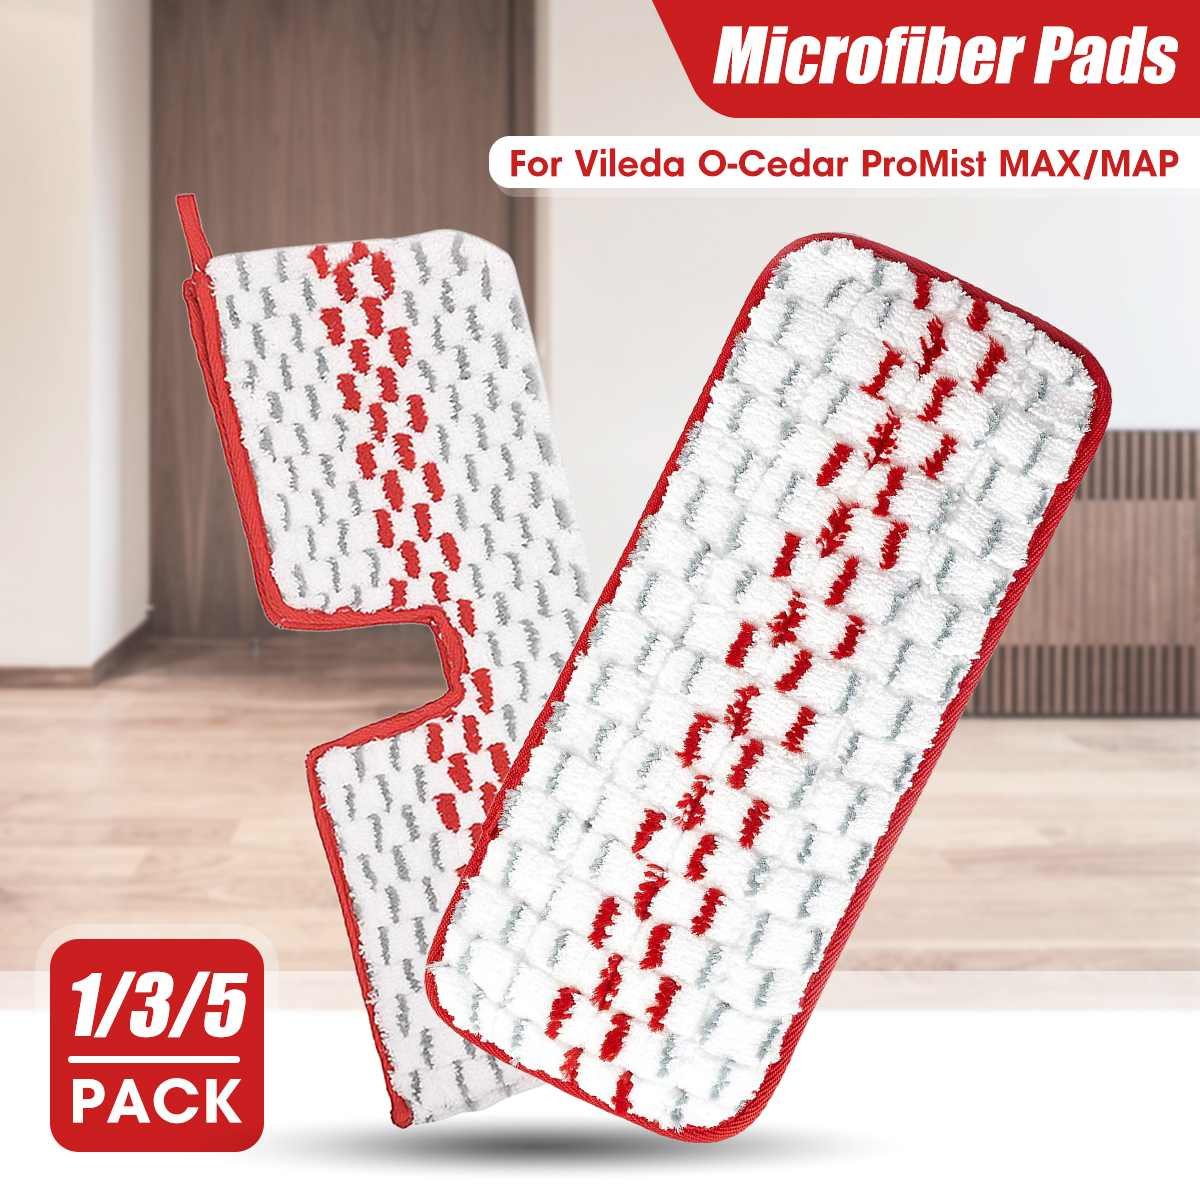 5pcs Floor Mop Reusable Microfiber Pads Wet Dry Cleaning Tools Replacement Paste Cloth Cover for Vileda O-Cedar ProMist MAX/MAP(China)